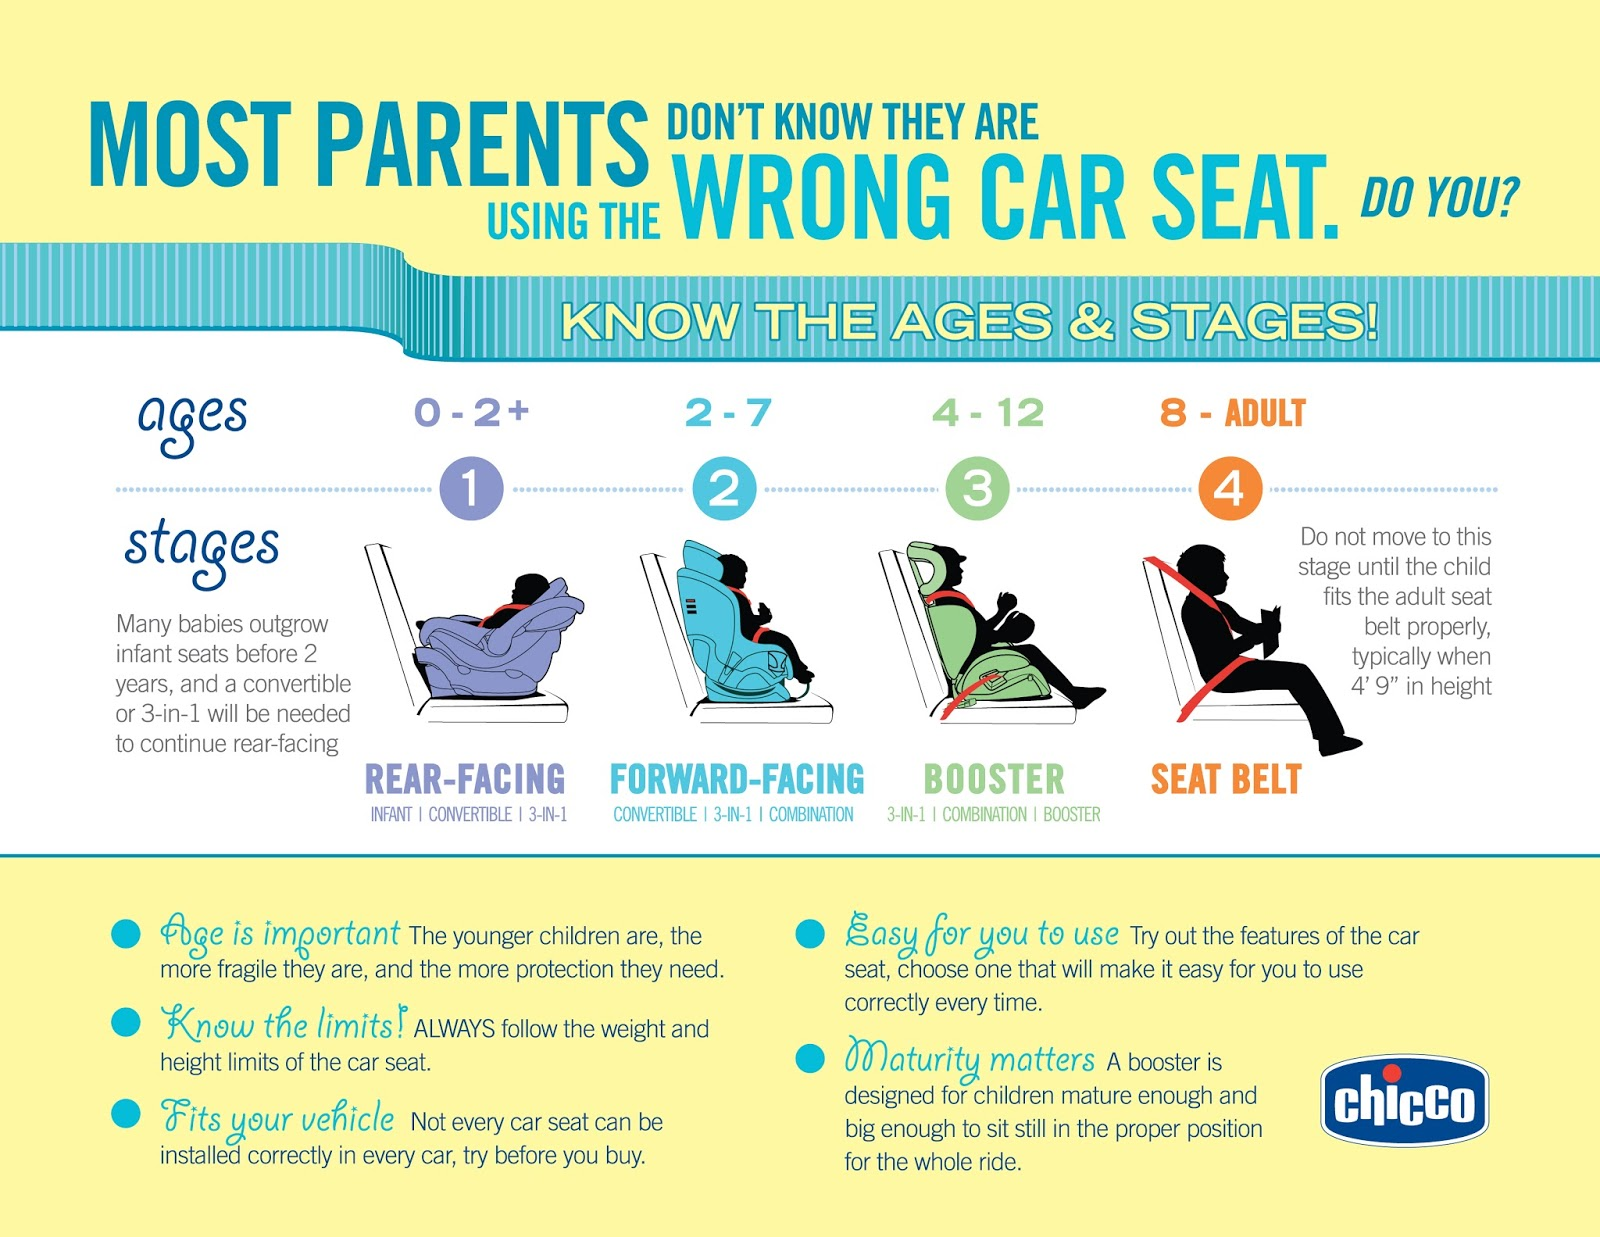 car seat safety tips from chicco child passenger safety week mommy katie. Black Bedroom Furniture Sets. Home Design Ideas